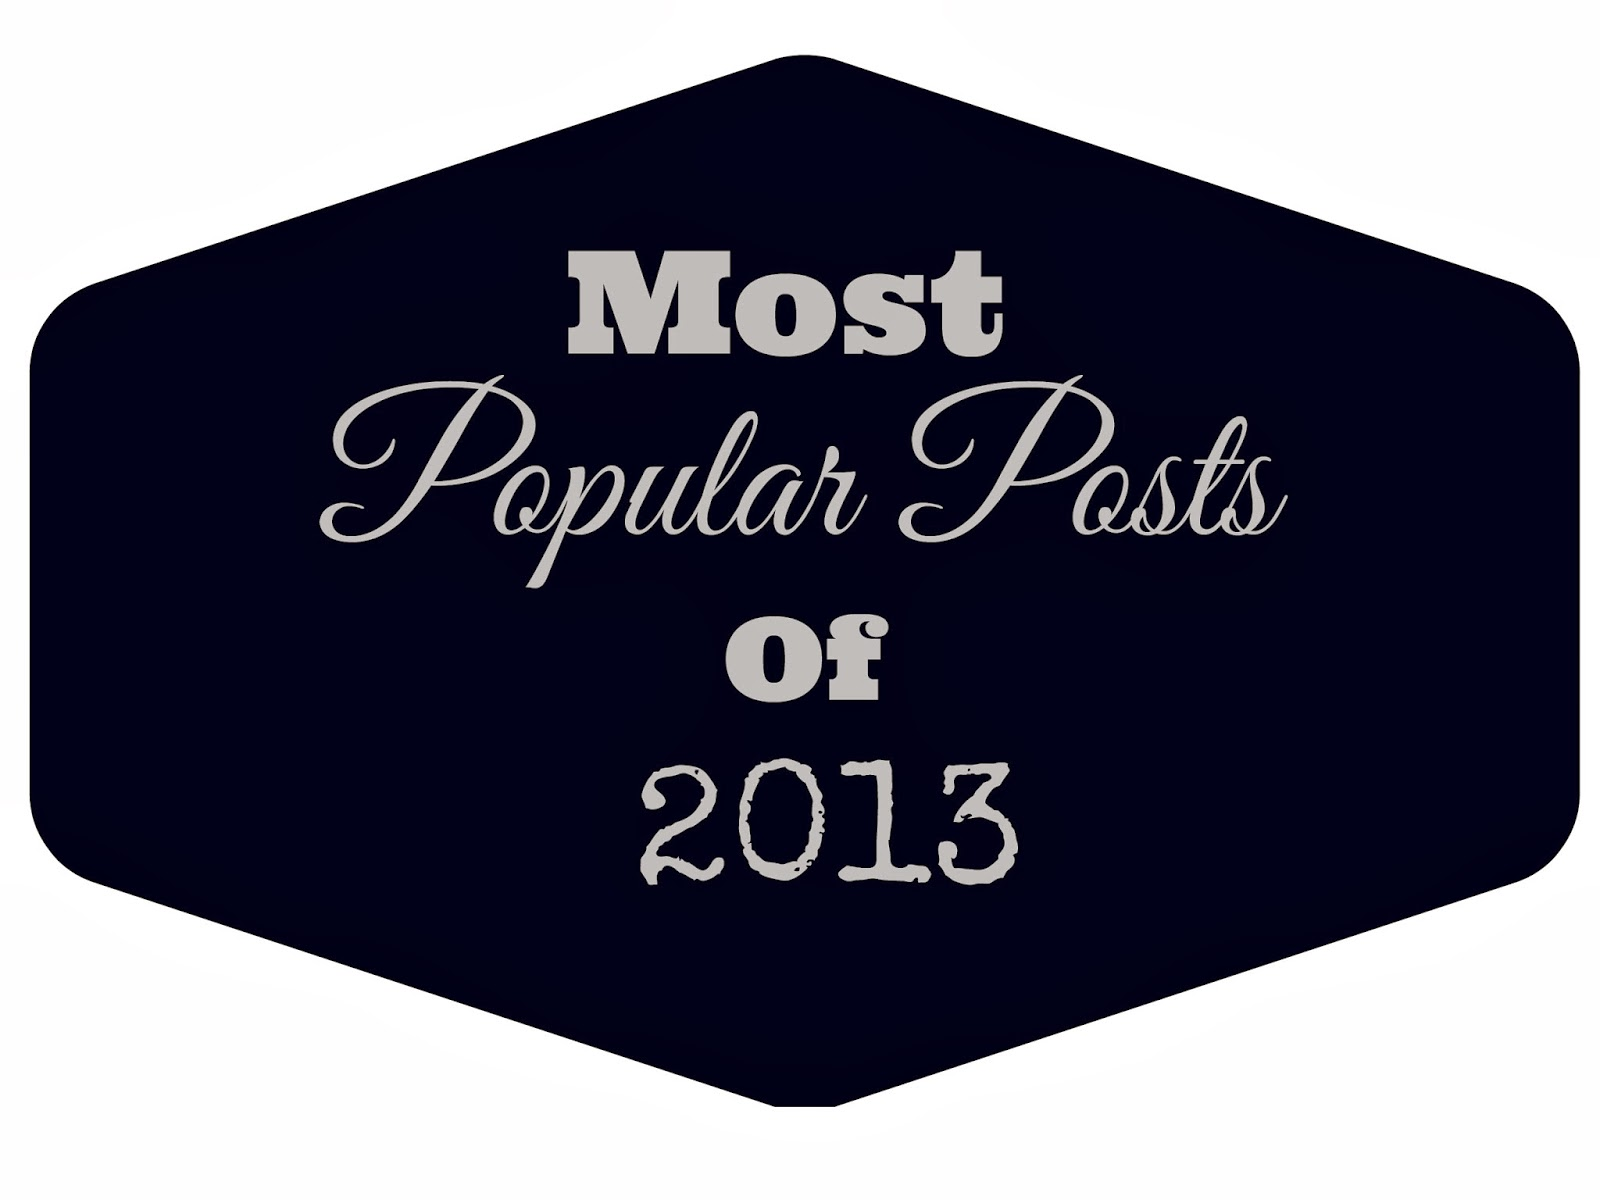 Restoration Beauty: Most Popular Posts of 2013